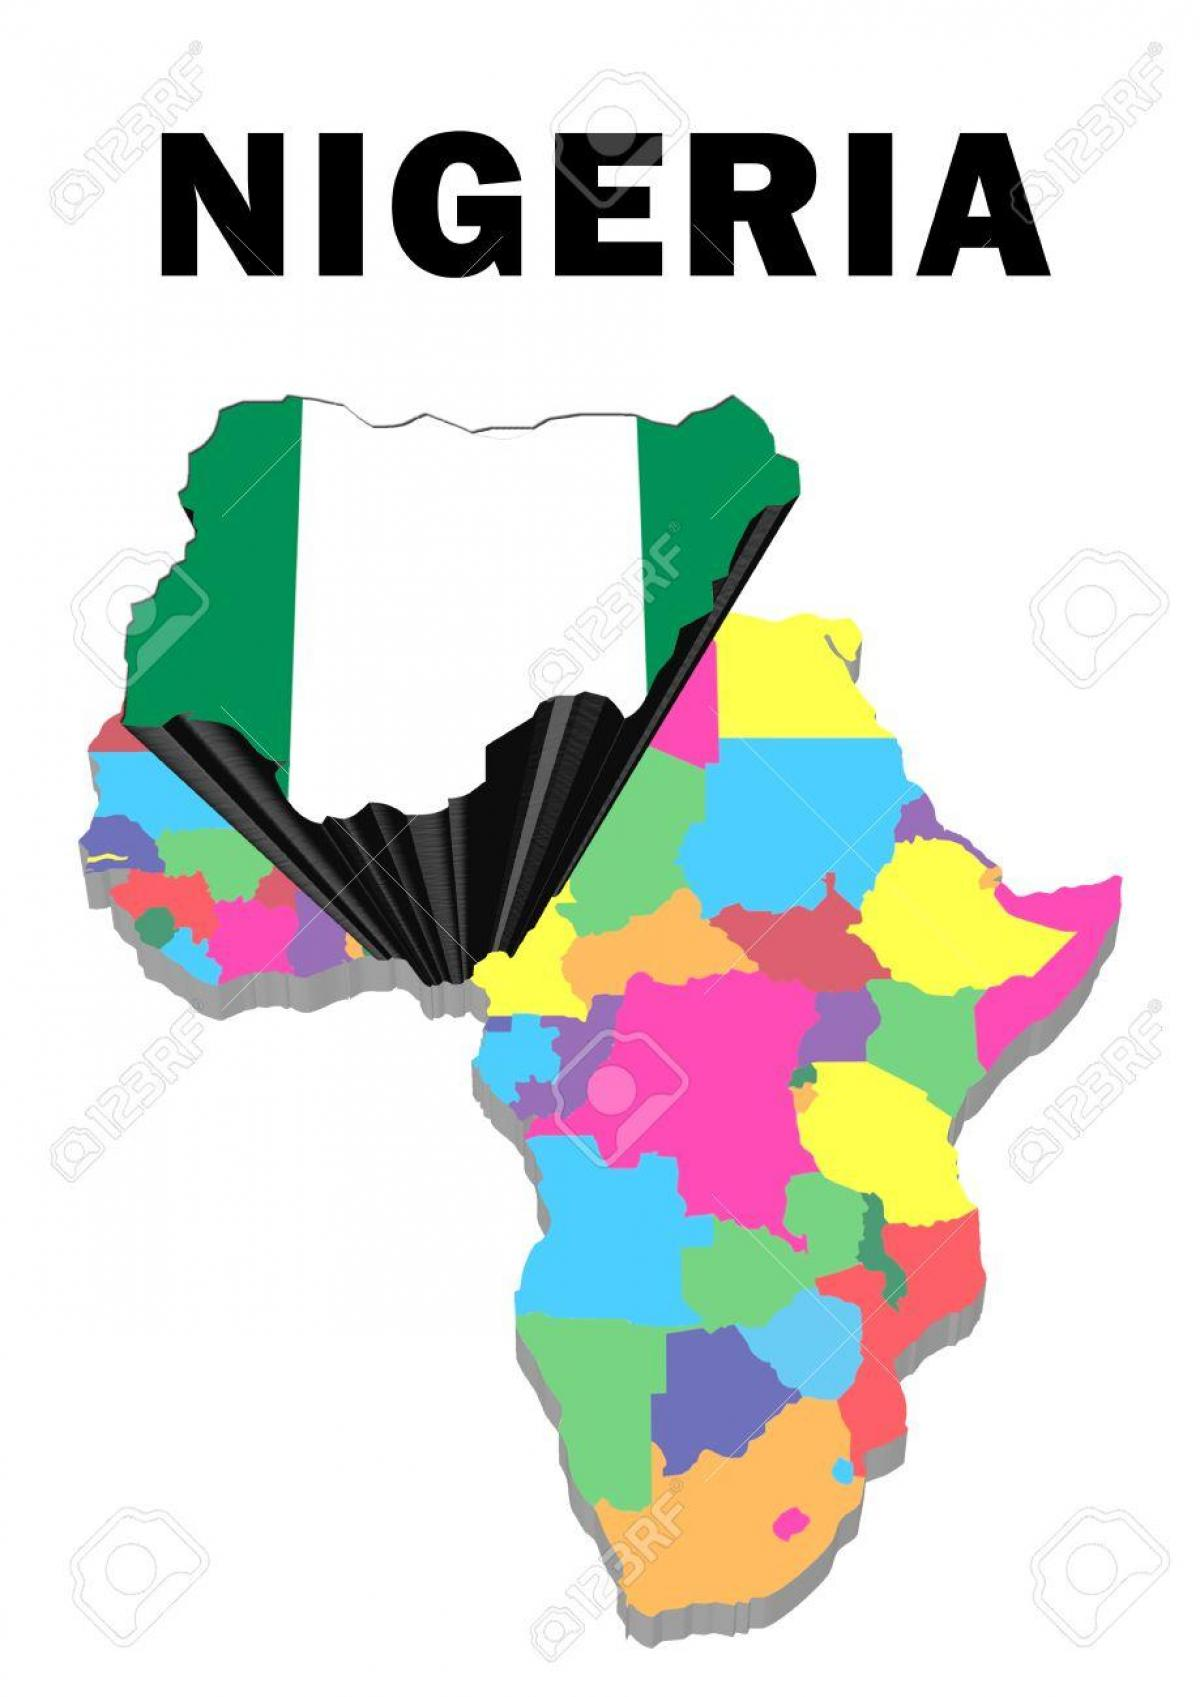 Africa Map Nigeria.Nigeria Map Africa Map Of Africa With Nigeria Highlighted Western